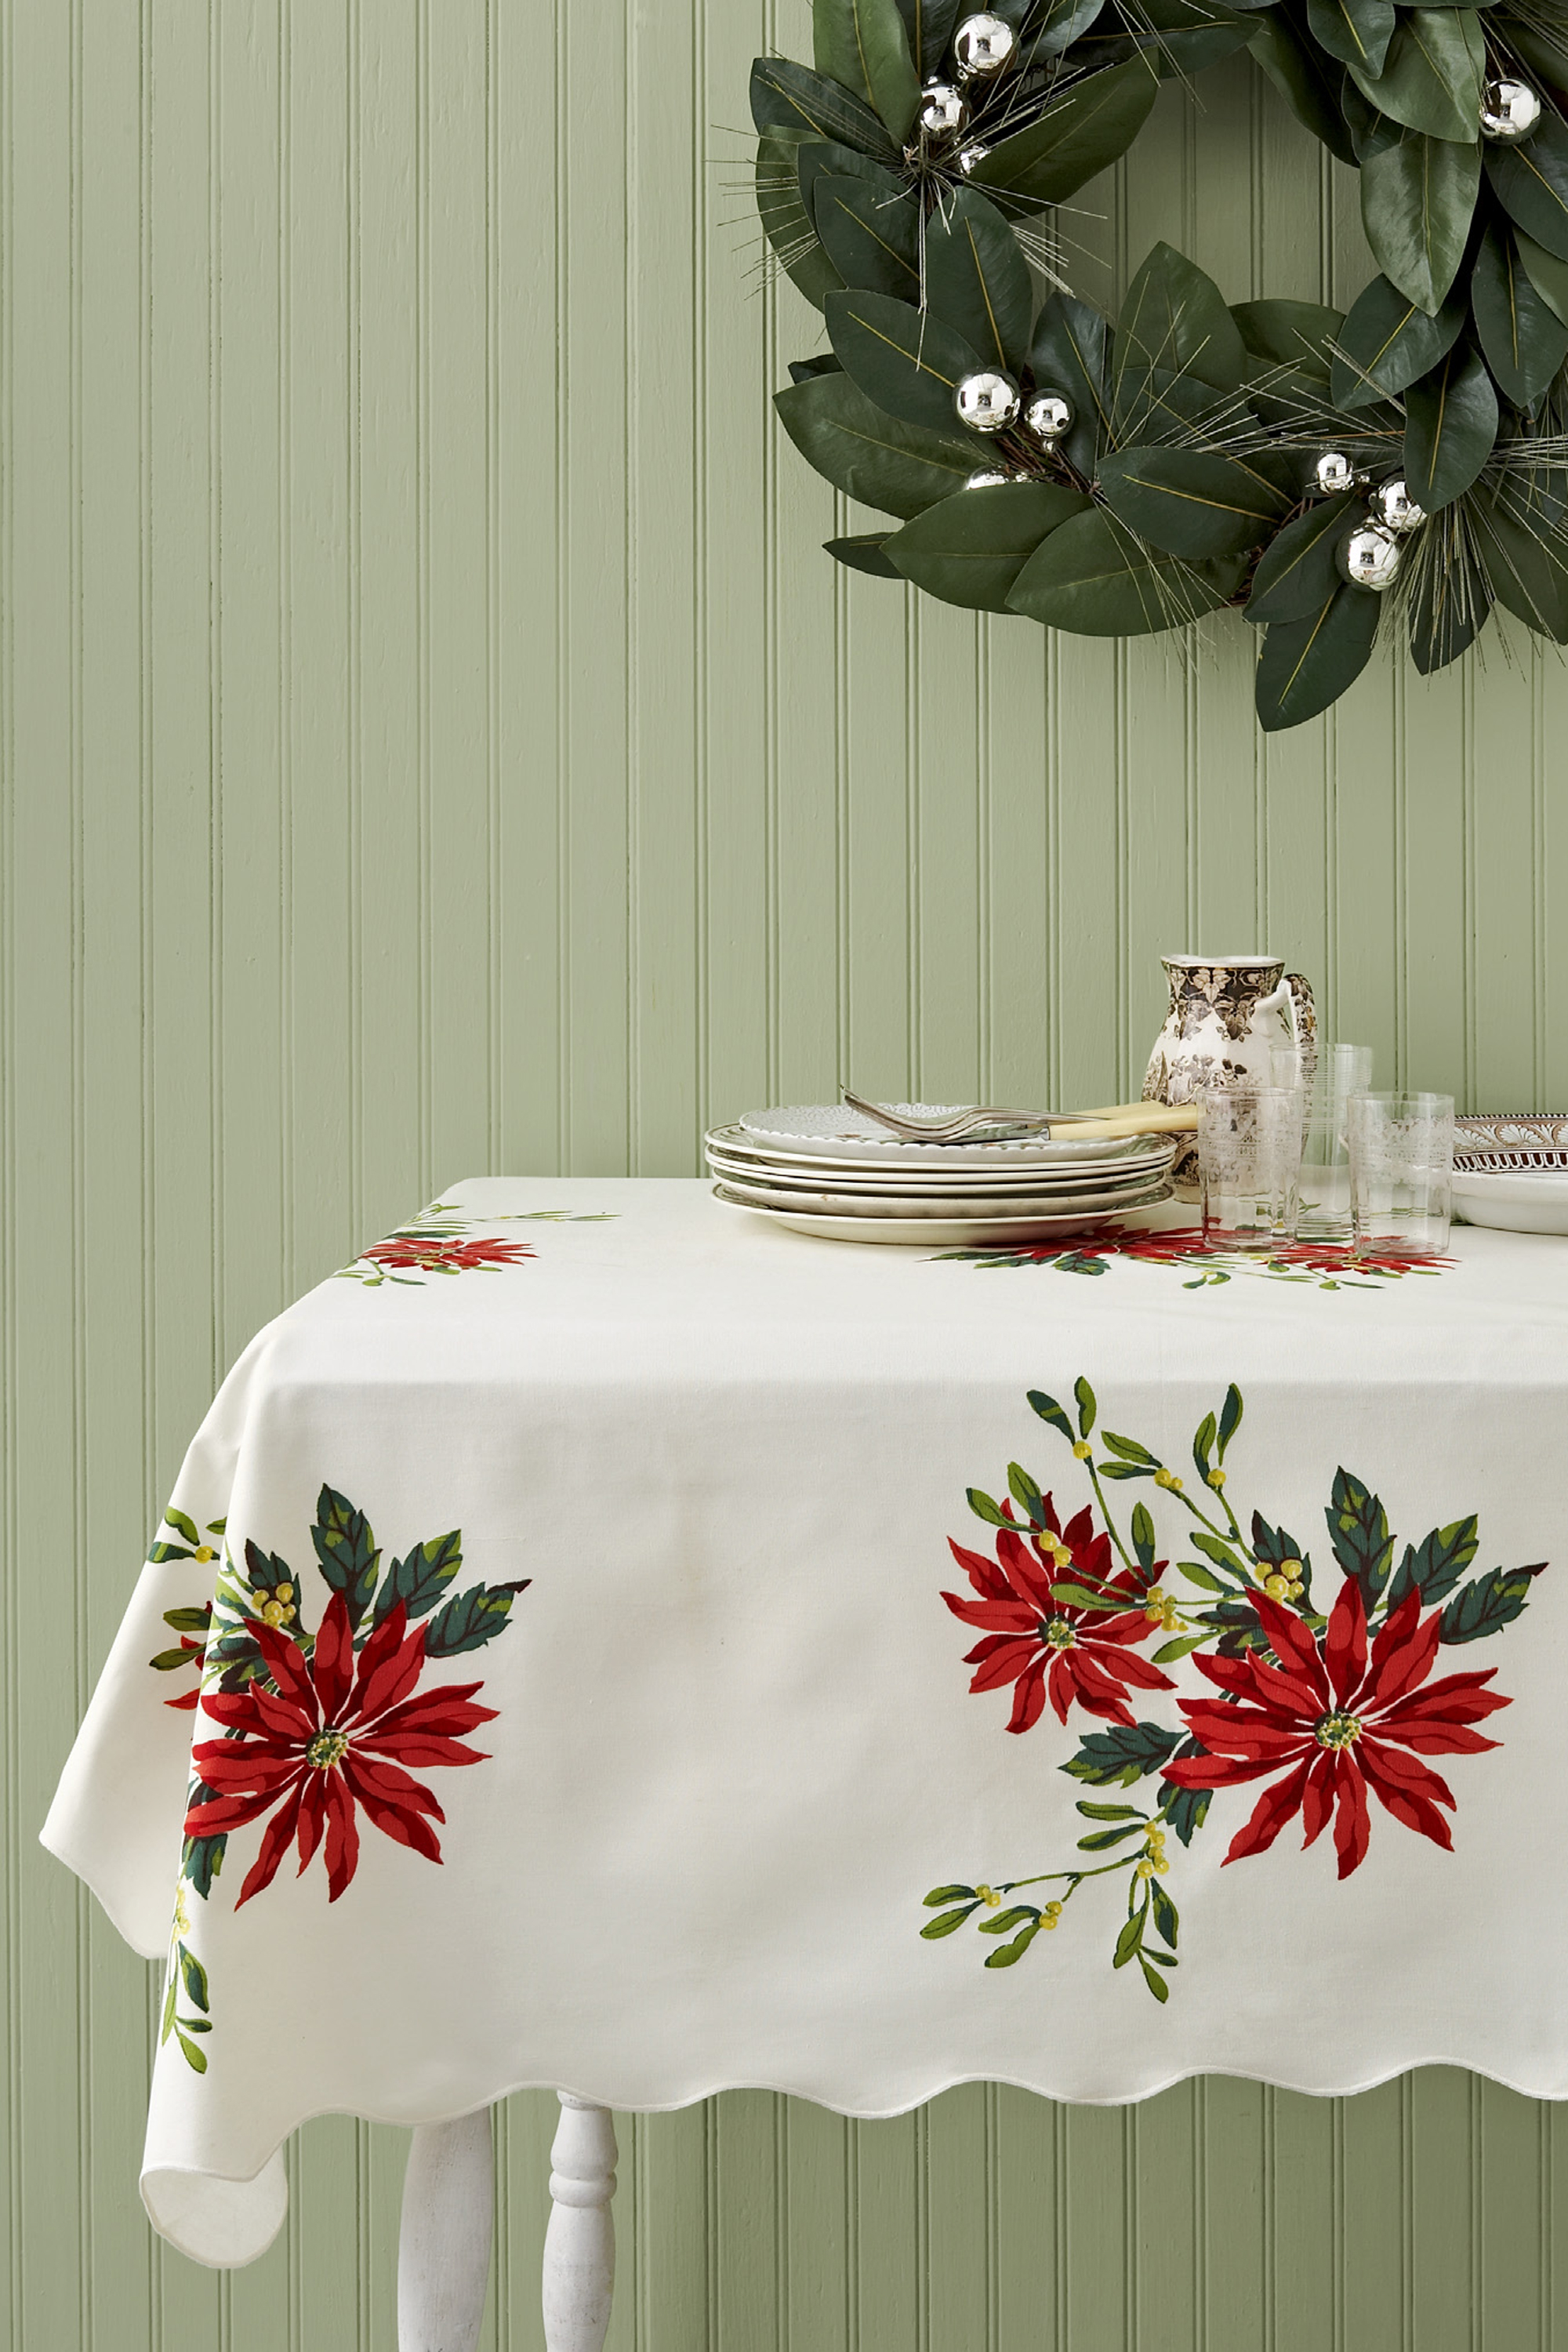 Vintage Christmas Tablecloths And Linens Collecting